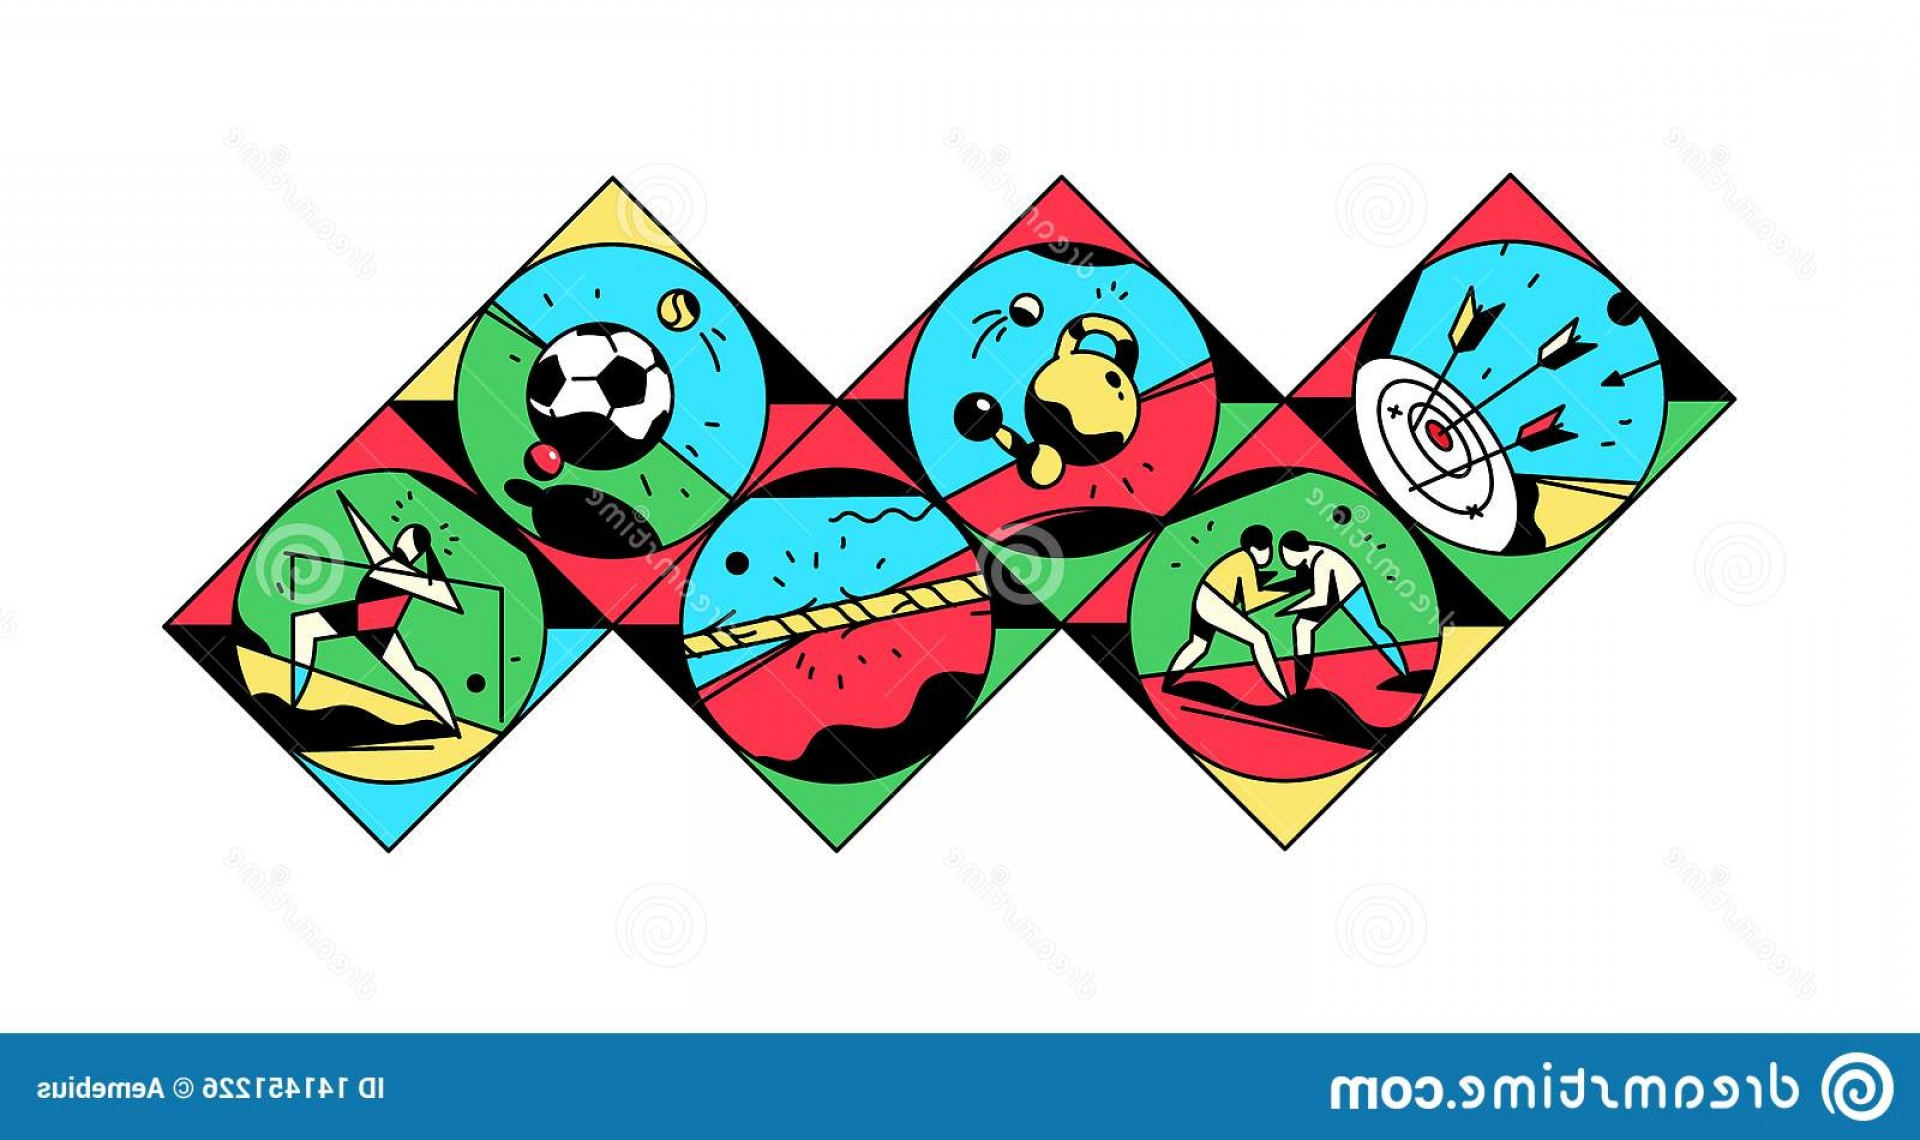 Sport Vector Art Games: Set Icons Theme Sports Vector Illustration Vintage Style Retro Sport Games Square Site Banner Brand Stickers Image